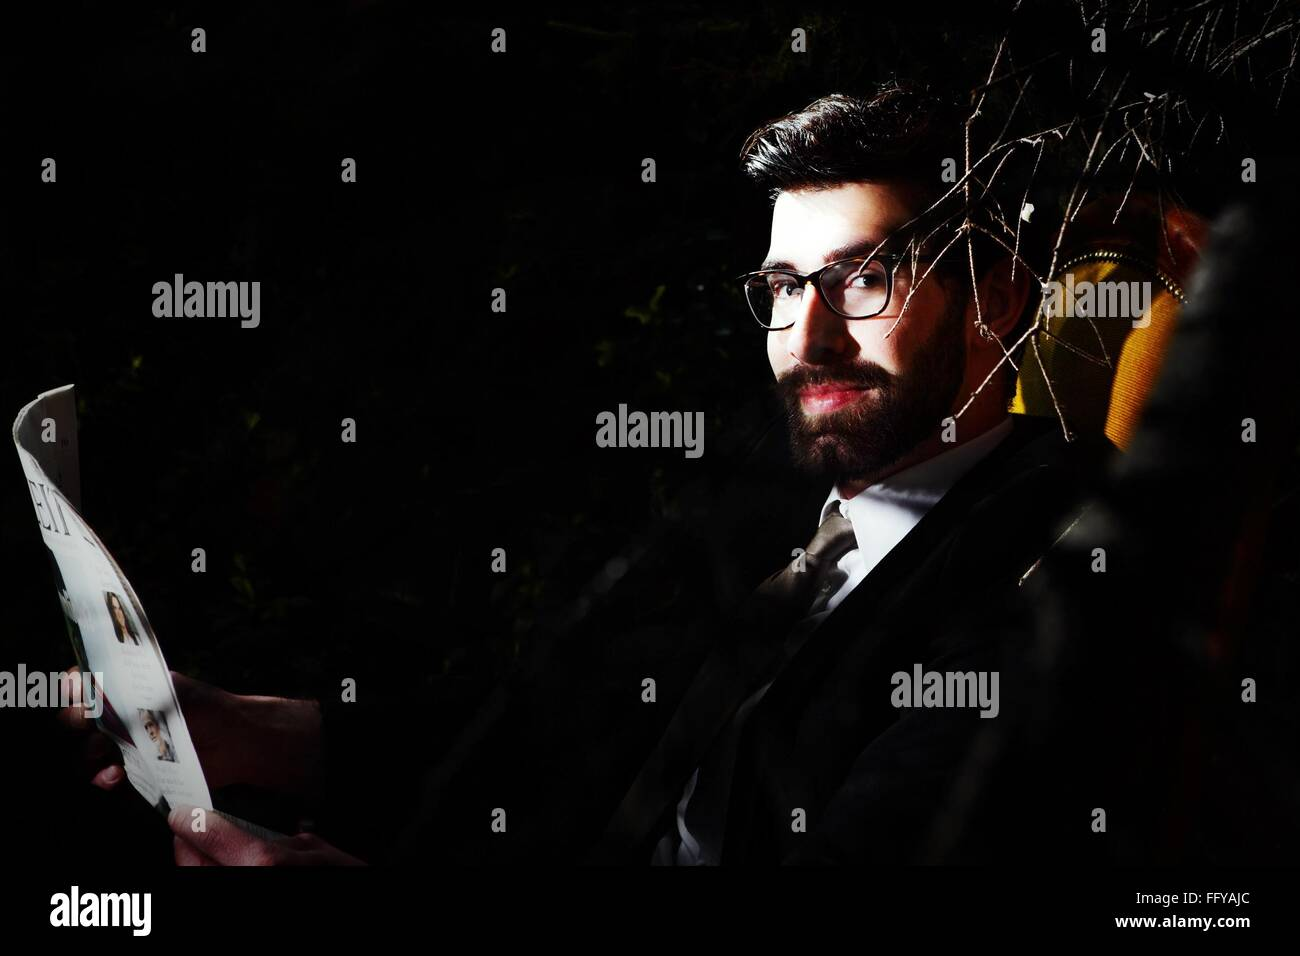 Portrait Of Well-Dressed Young Man Reading Newspaper In Park At Night - Stock Image